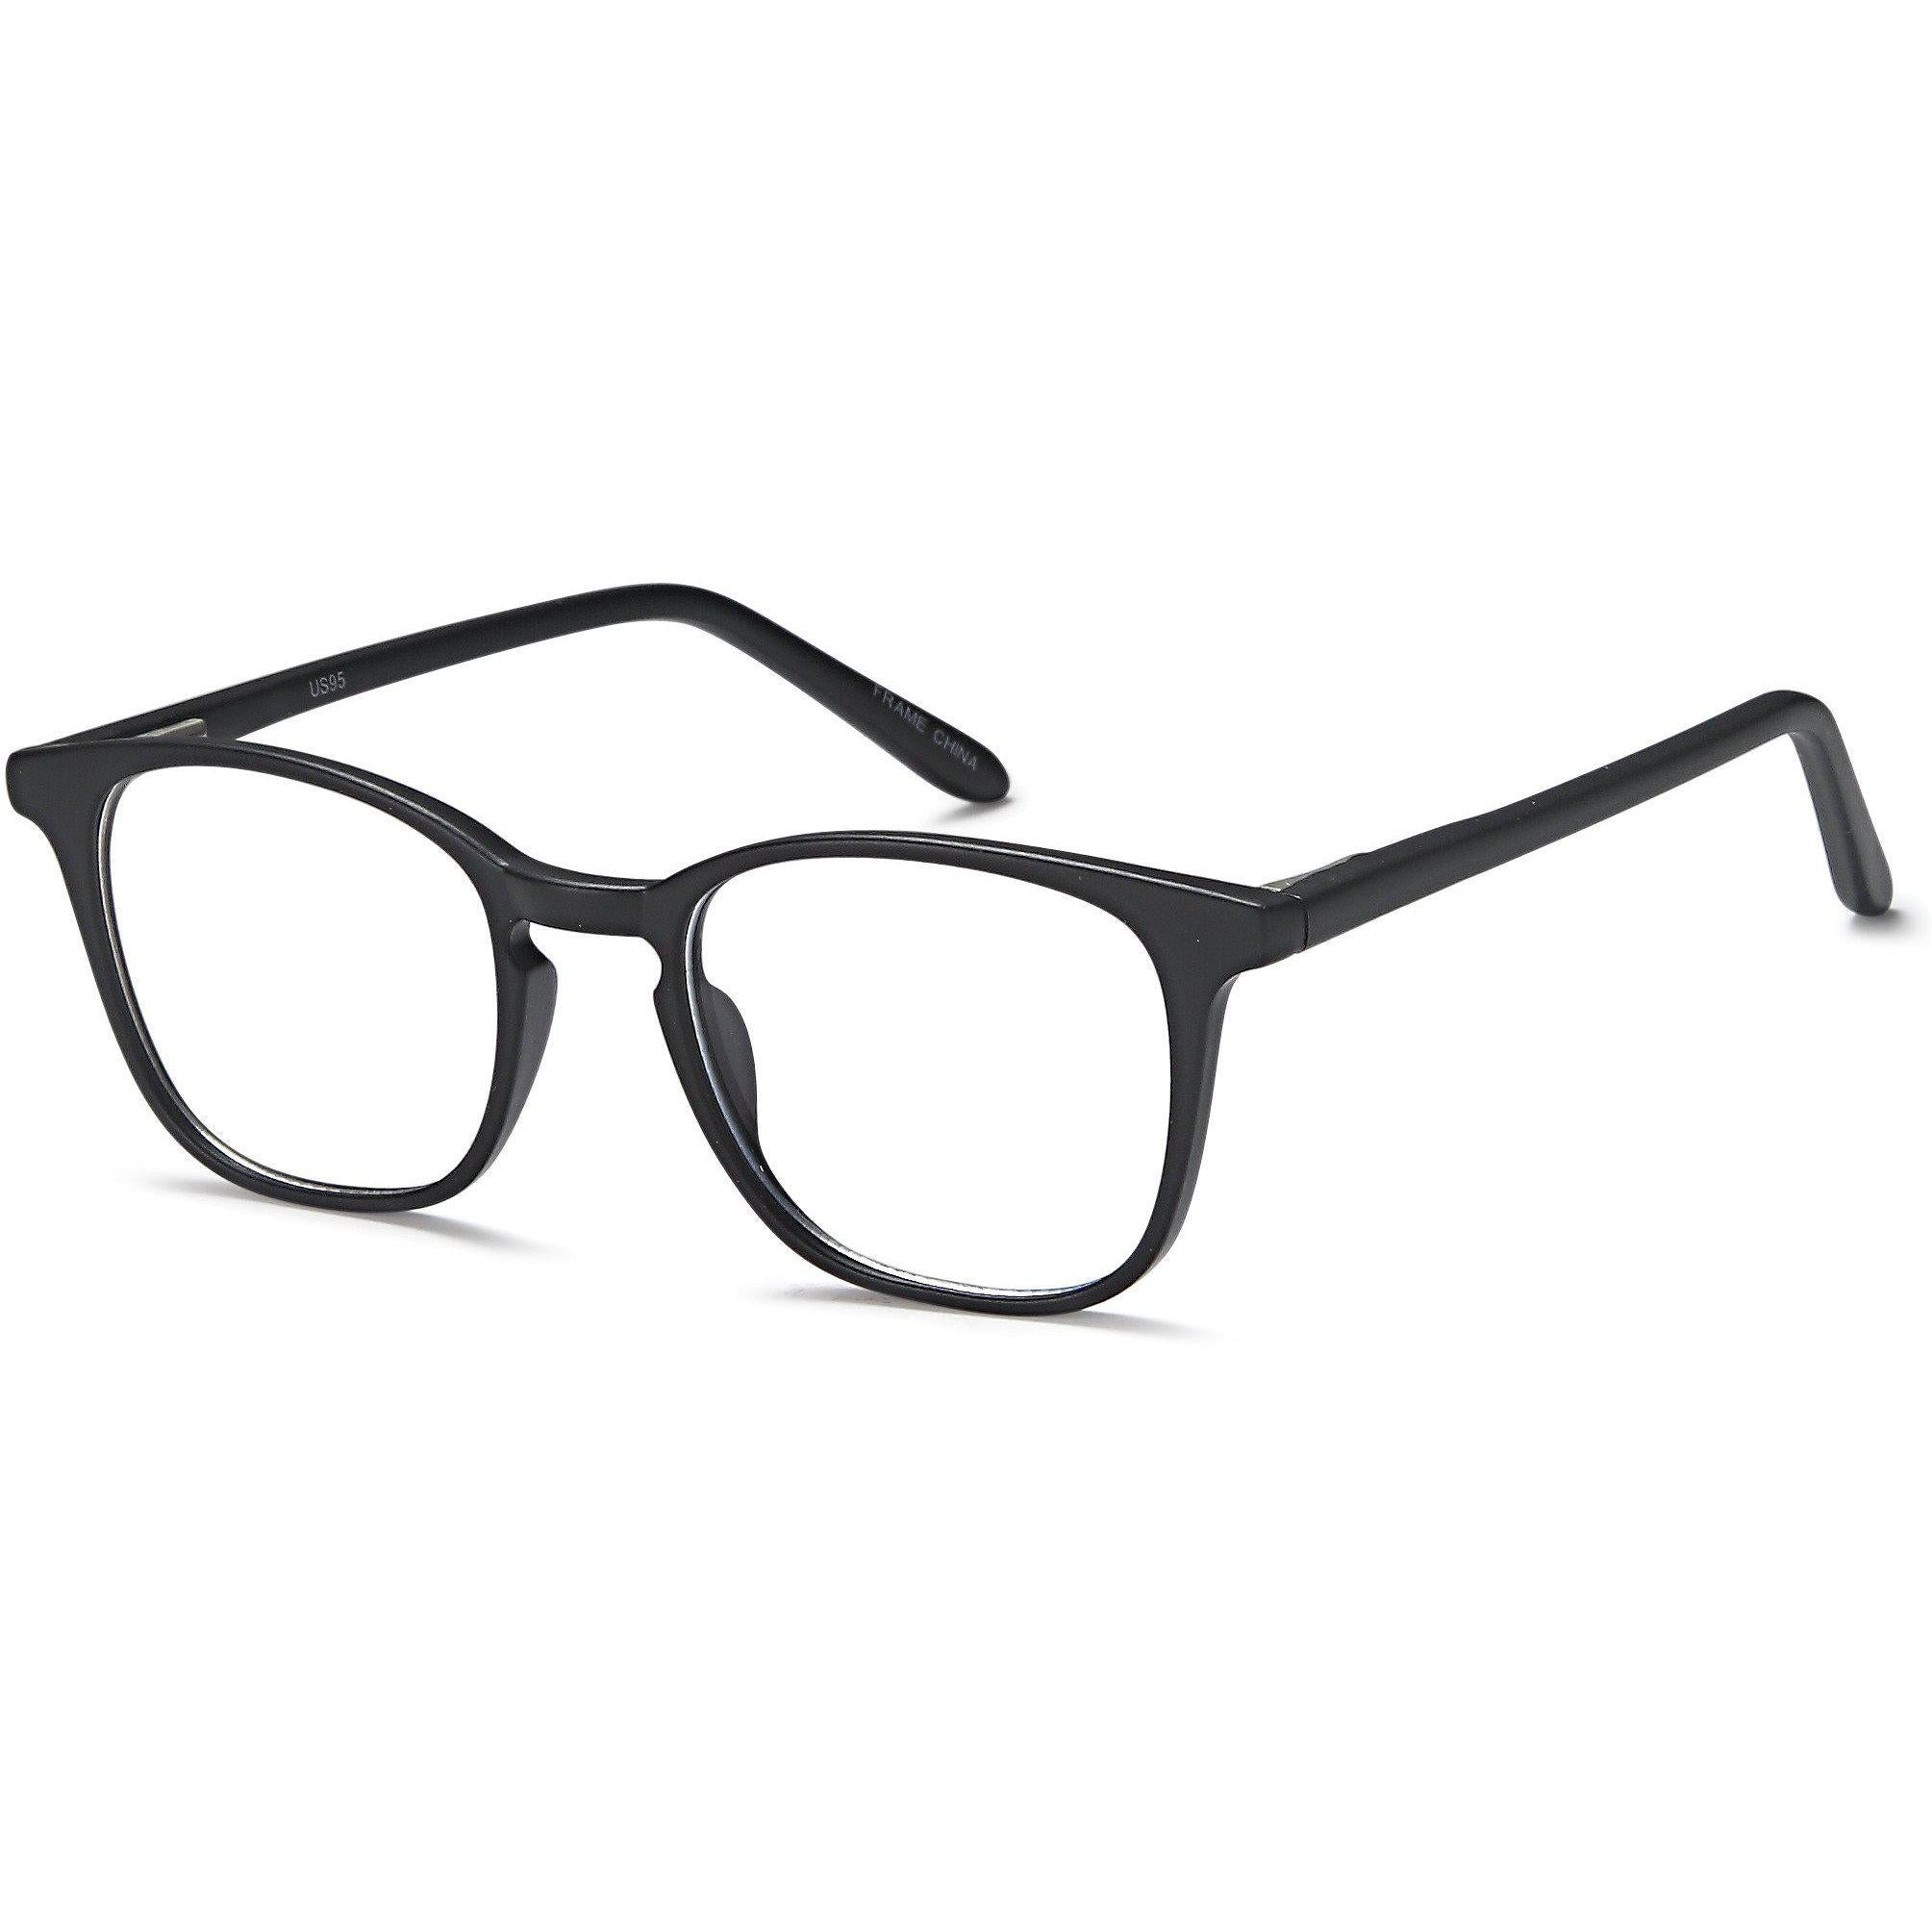 4U Prescription Glasses US 95 Optical Eyeglasses Frame - timetoshade